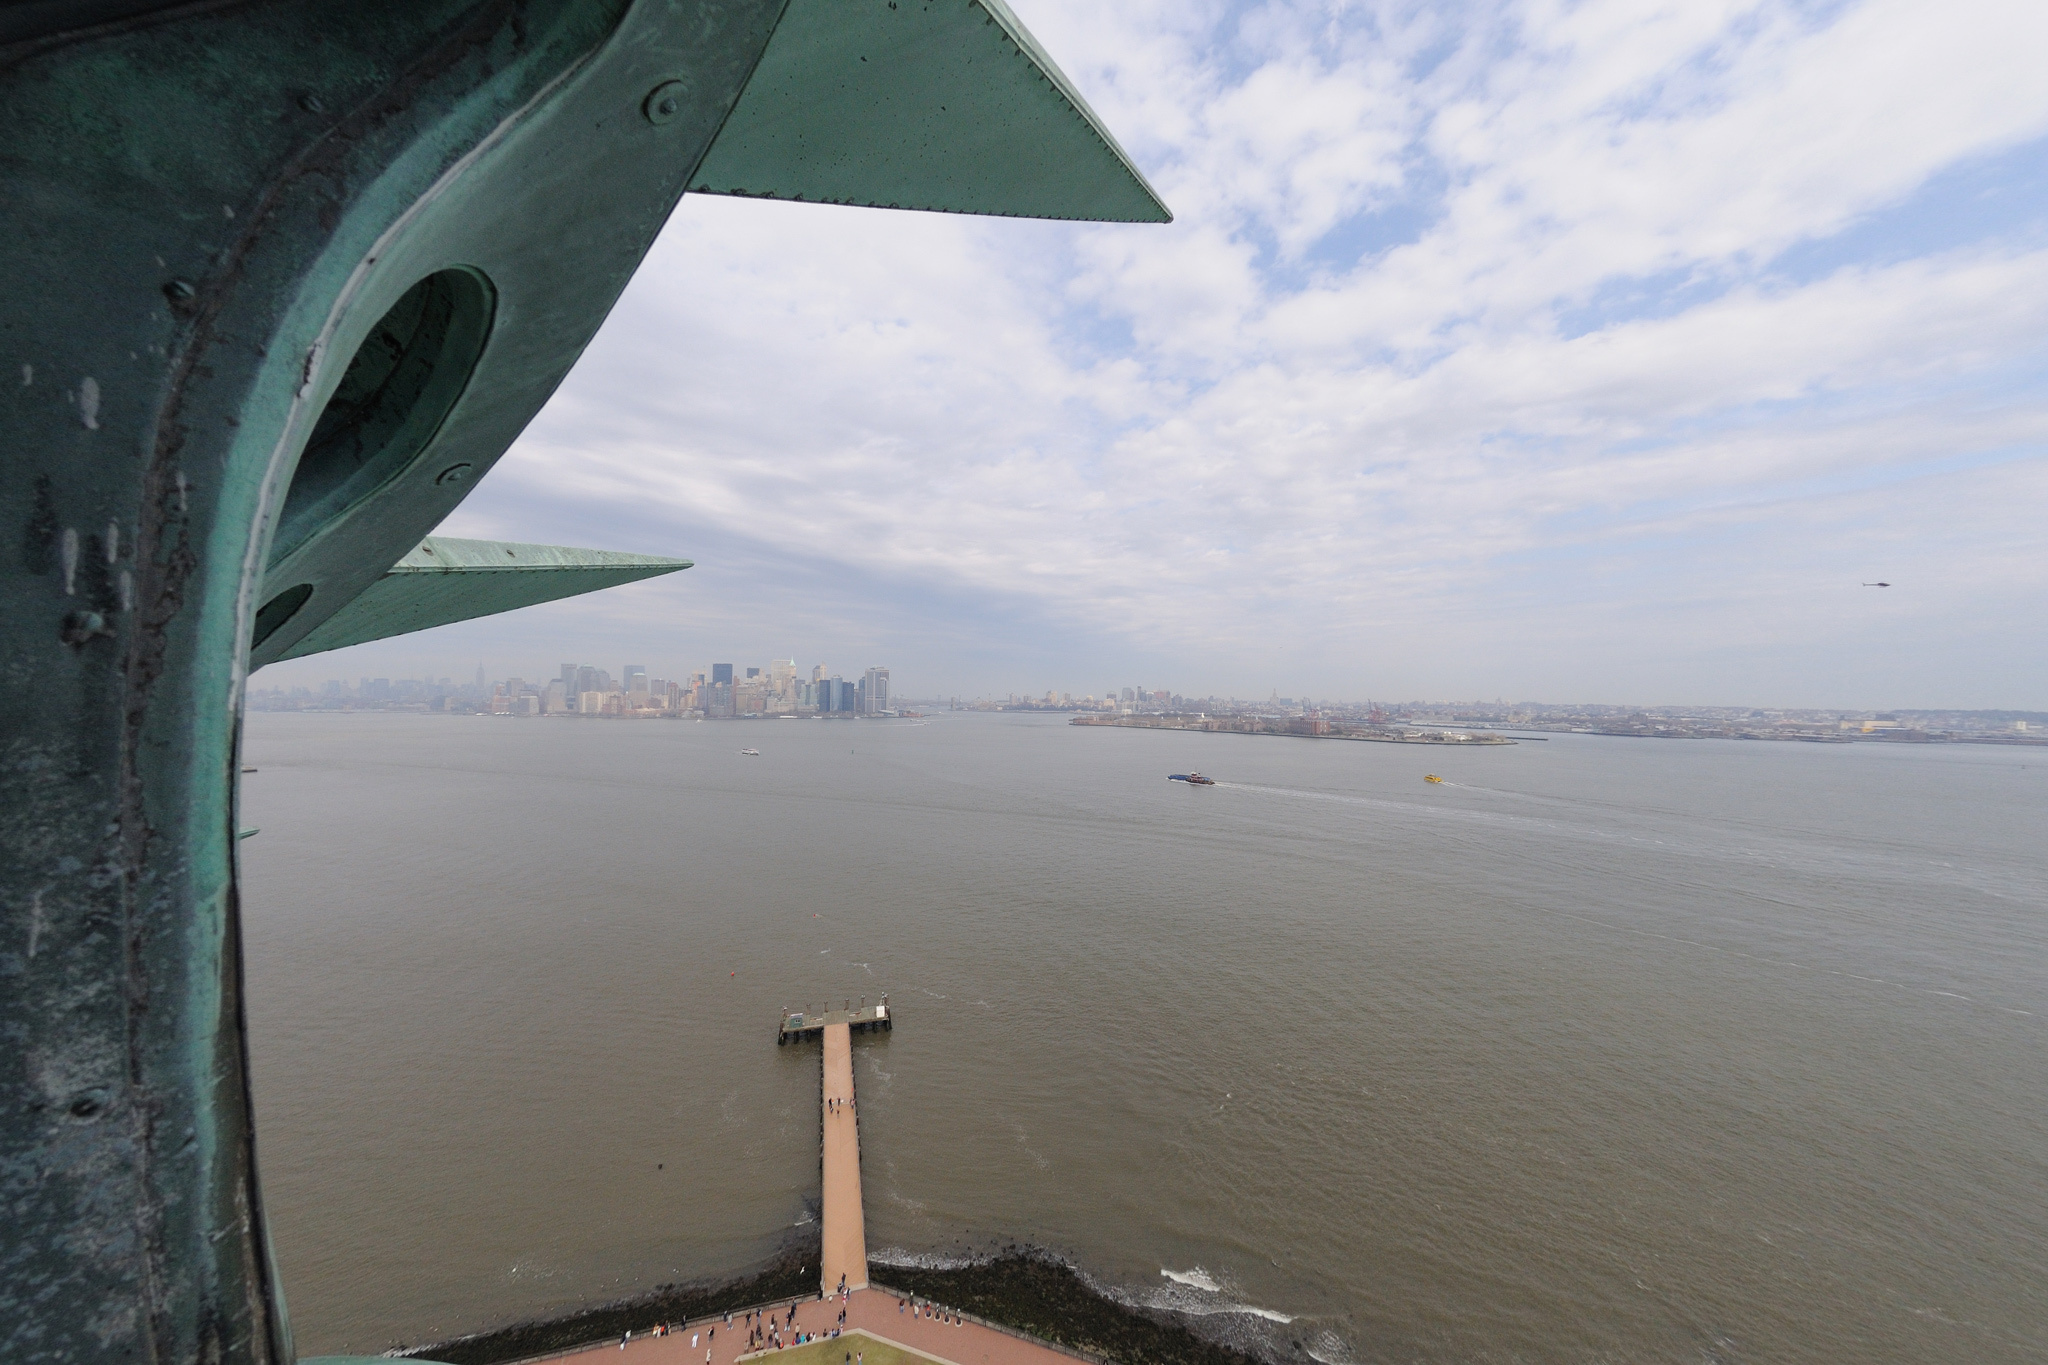 Take a trip to Lady Liberty's reopened crown